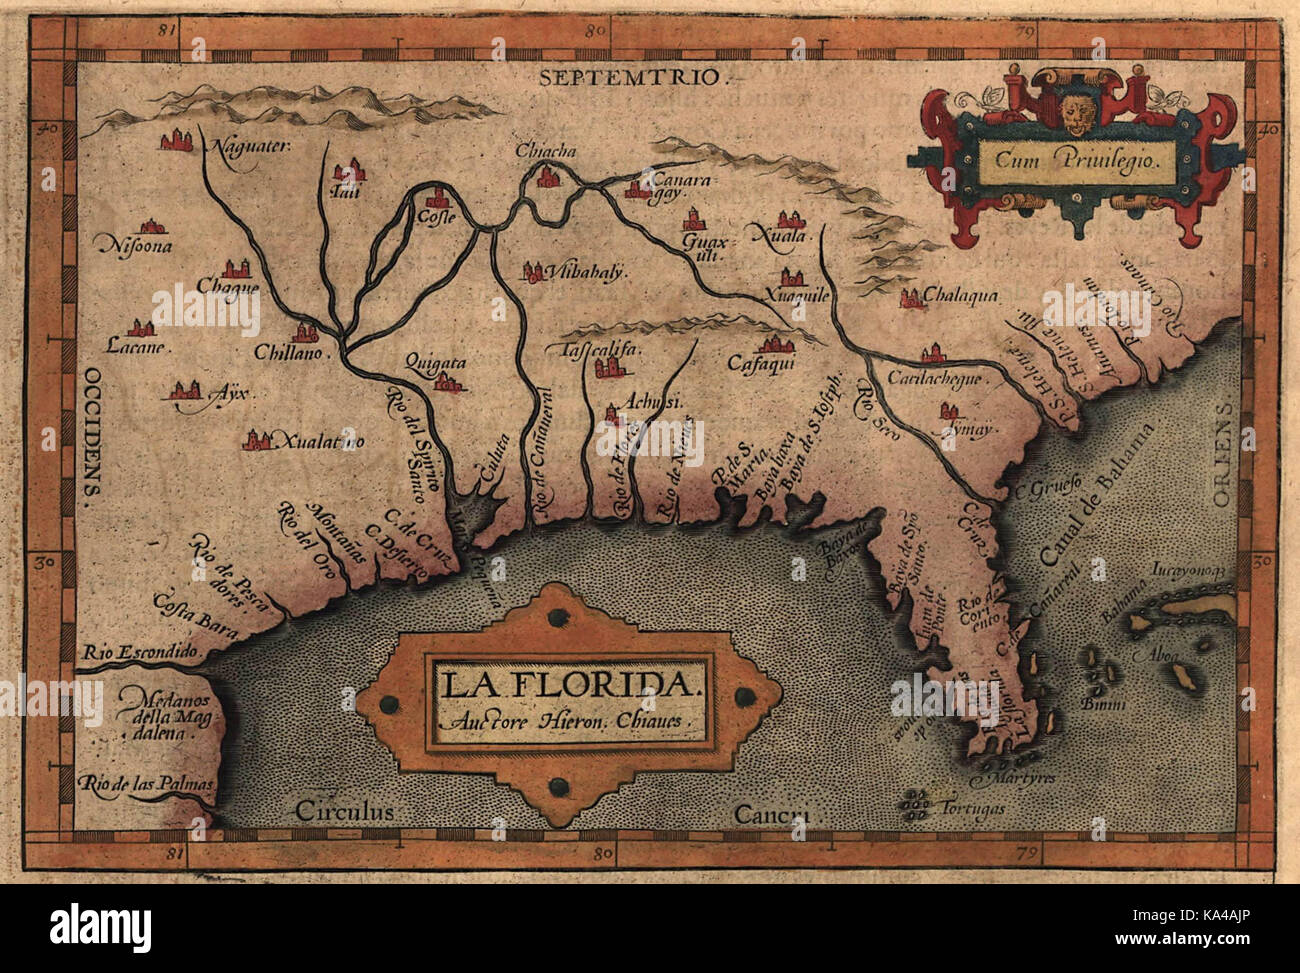 Map De Florida.Map Of Florida Likely Based On The Expeditions Of Hernando De Soto